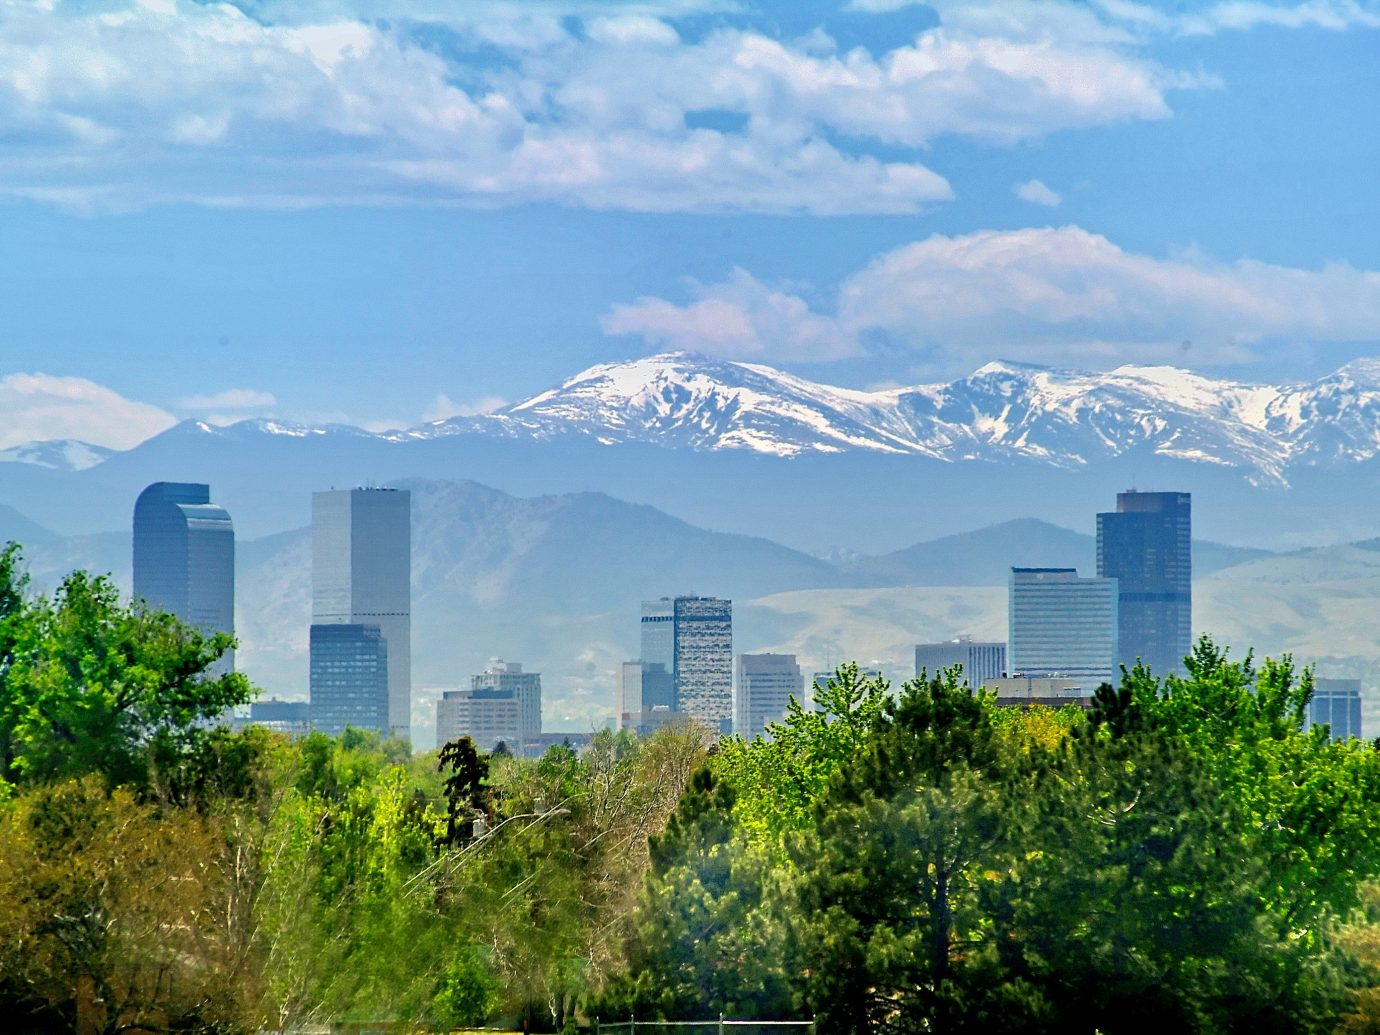 Skyline of Denver, CO